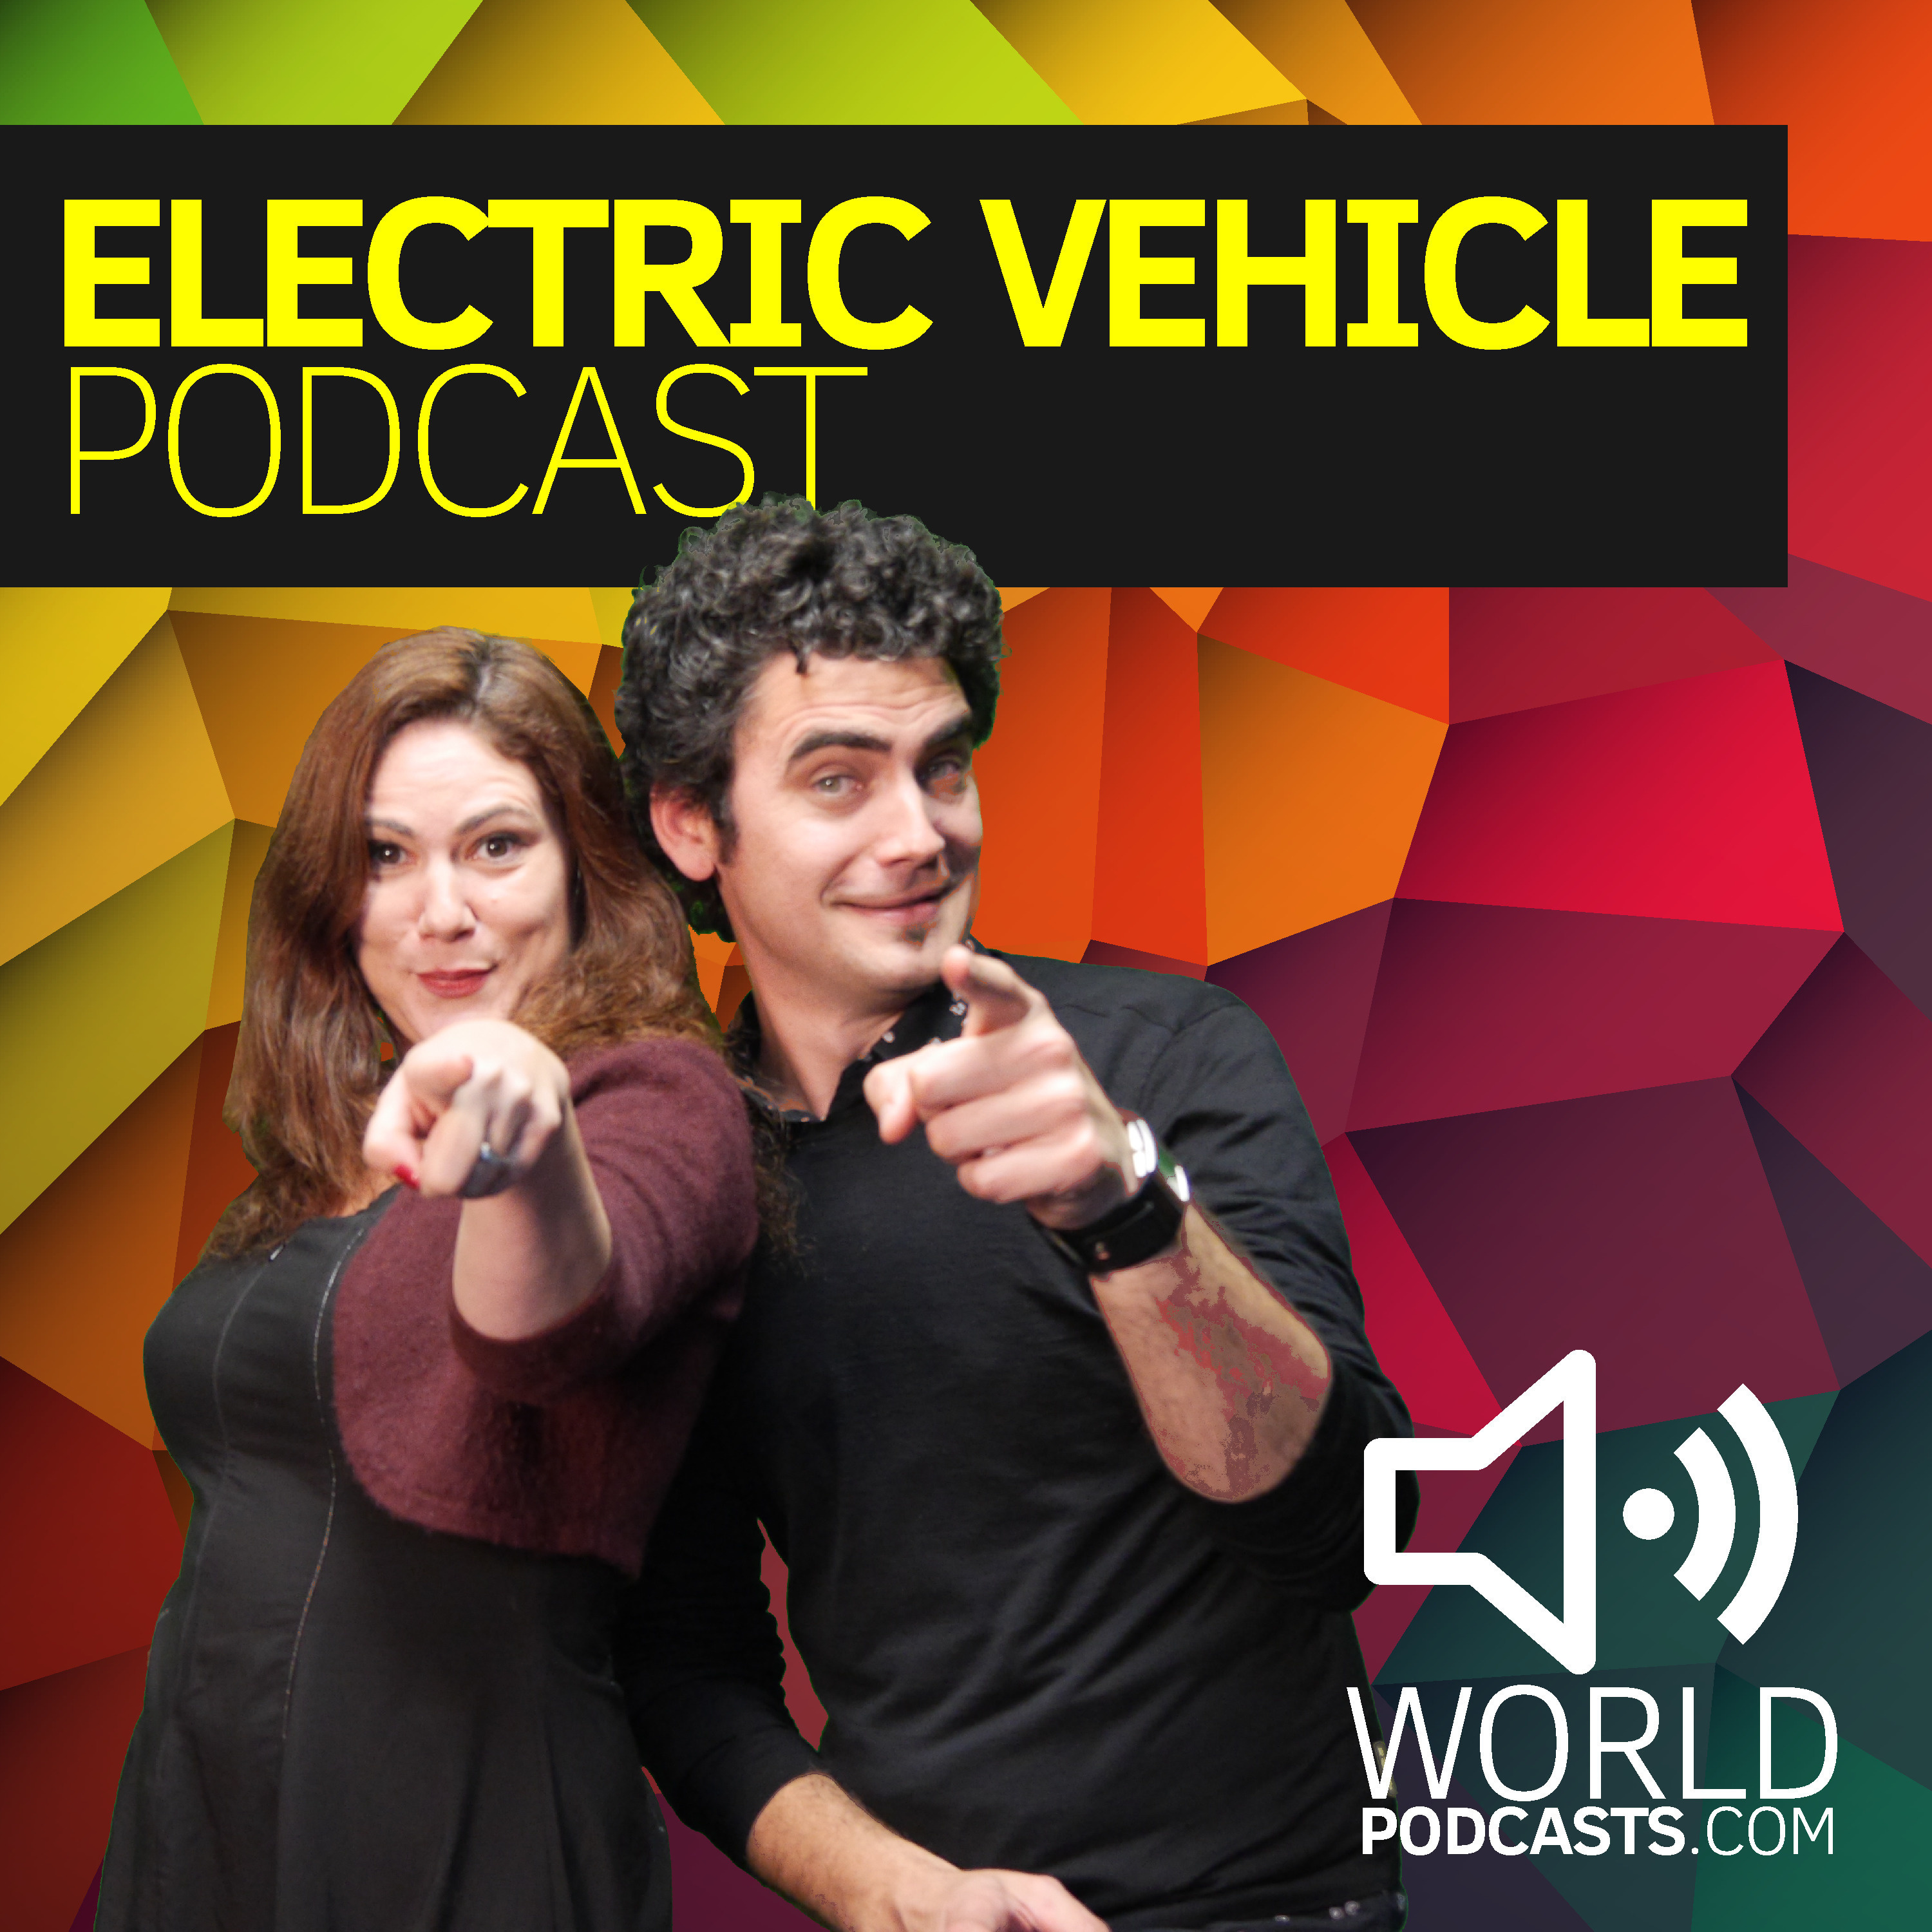 EV Podcast: EV World 2019, OEM Audio & Missing Lime Scooters